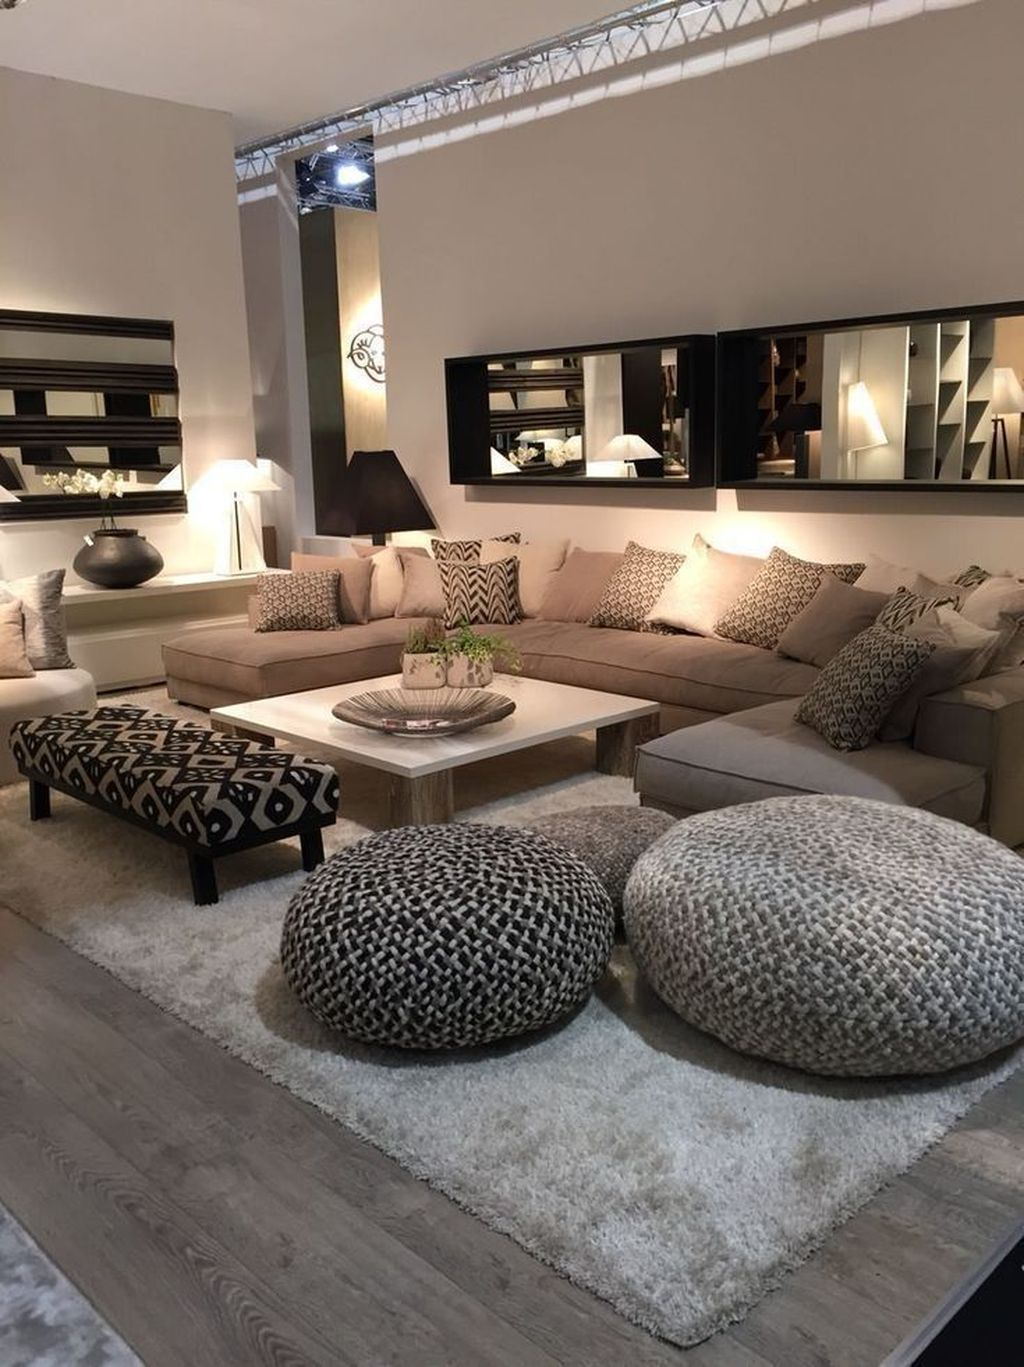 Stunning Interior Design Ideas For Your Living Room 33